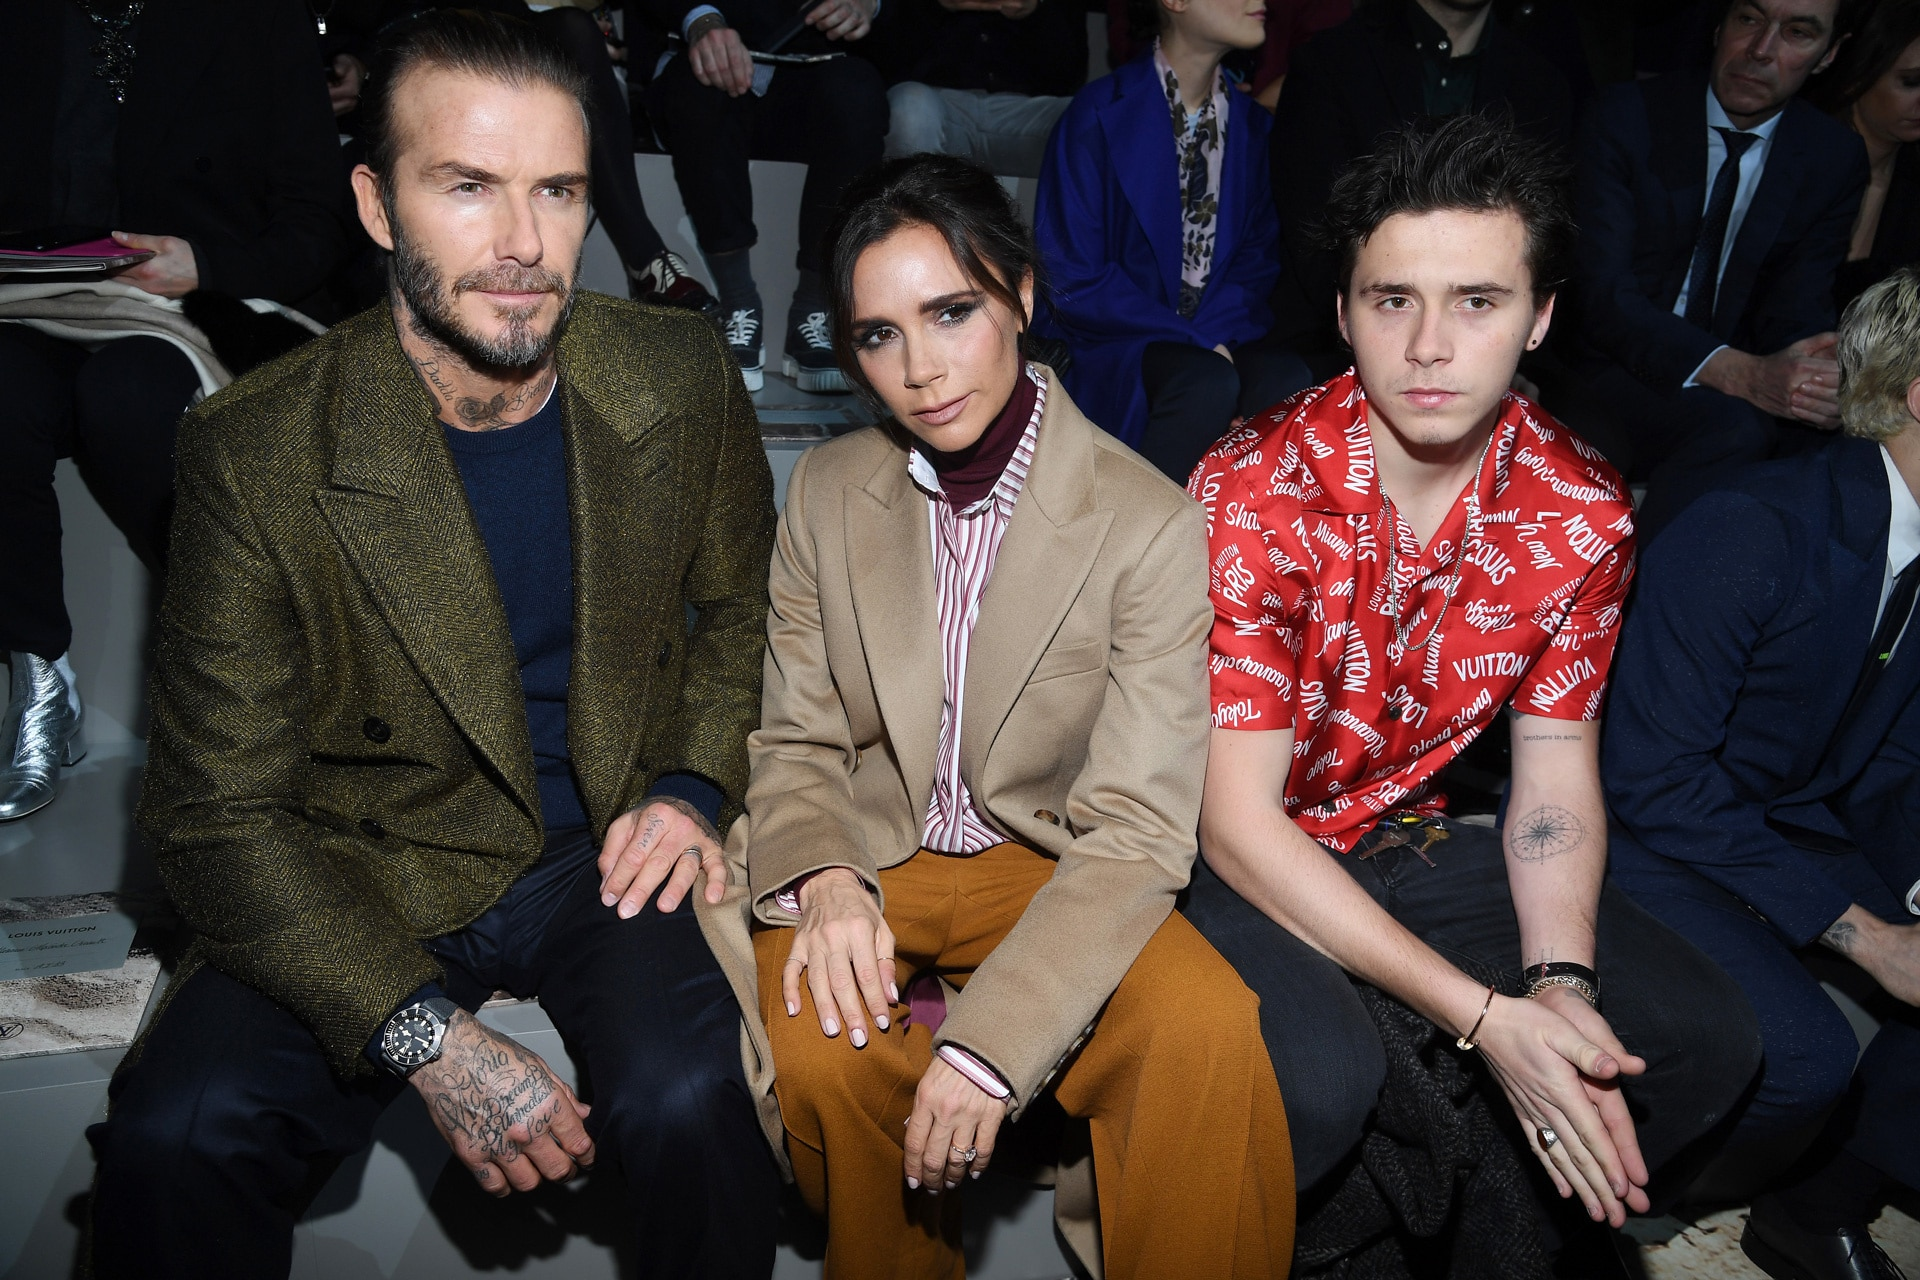 Brooklyn Beckham's new tattoo is an ode to Victoria Beckham